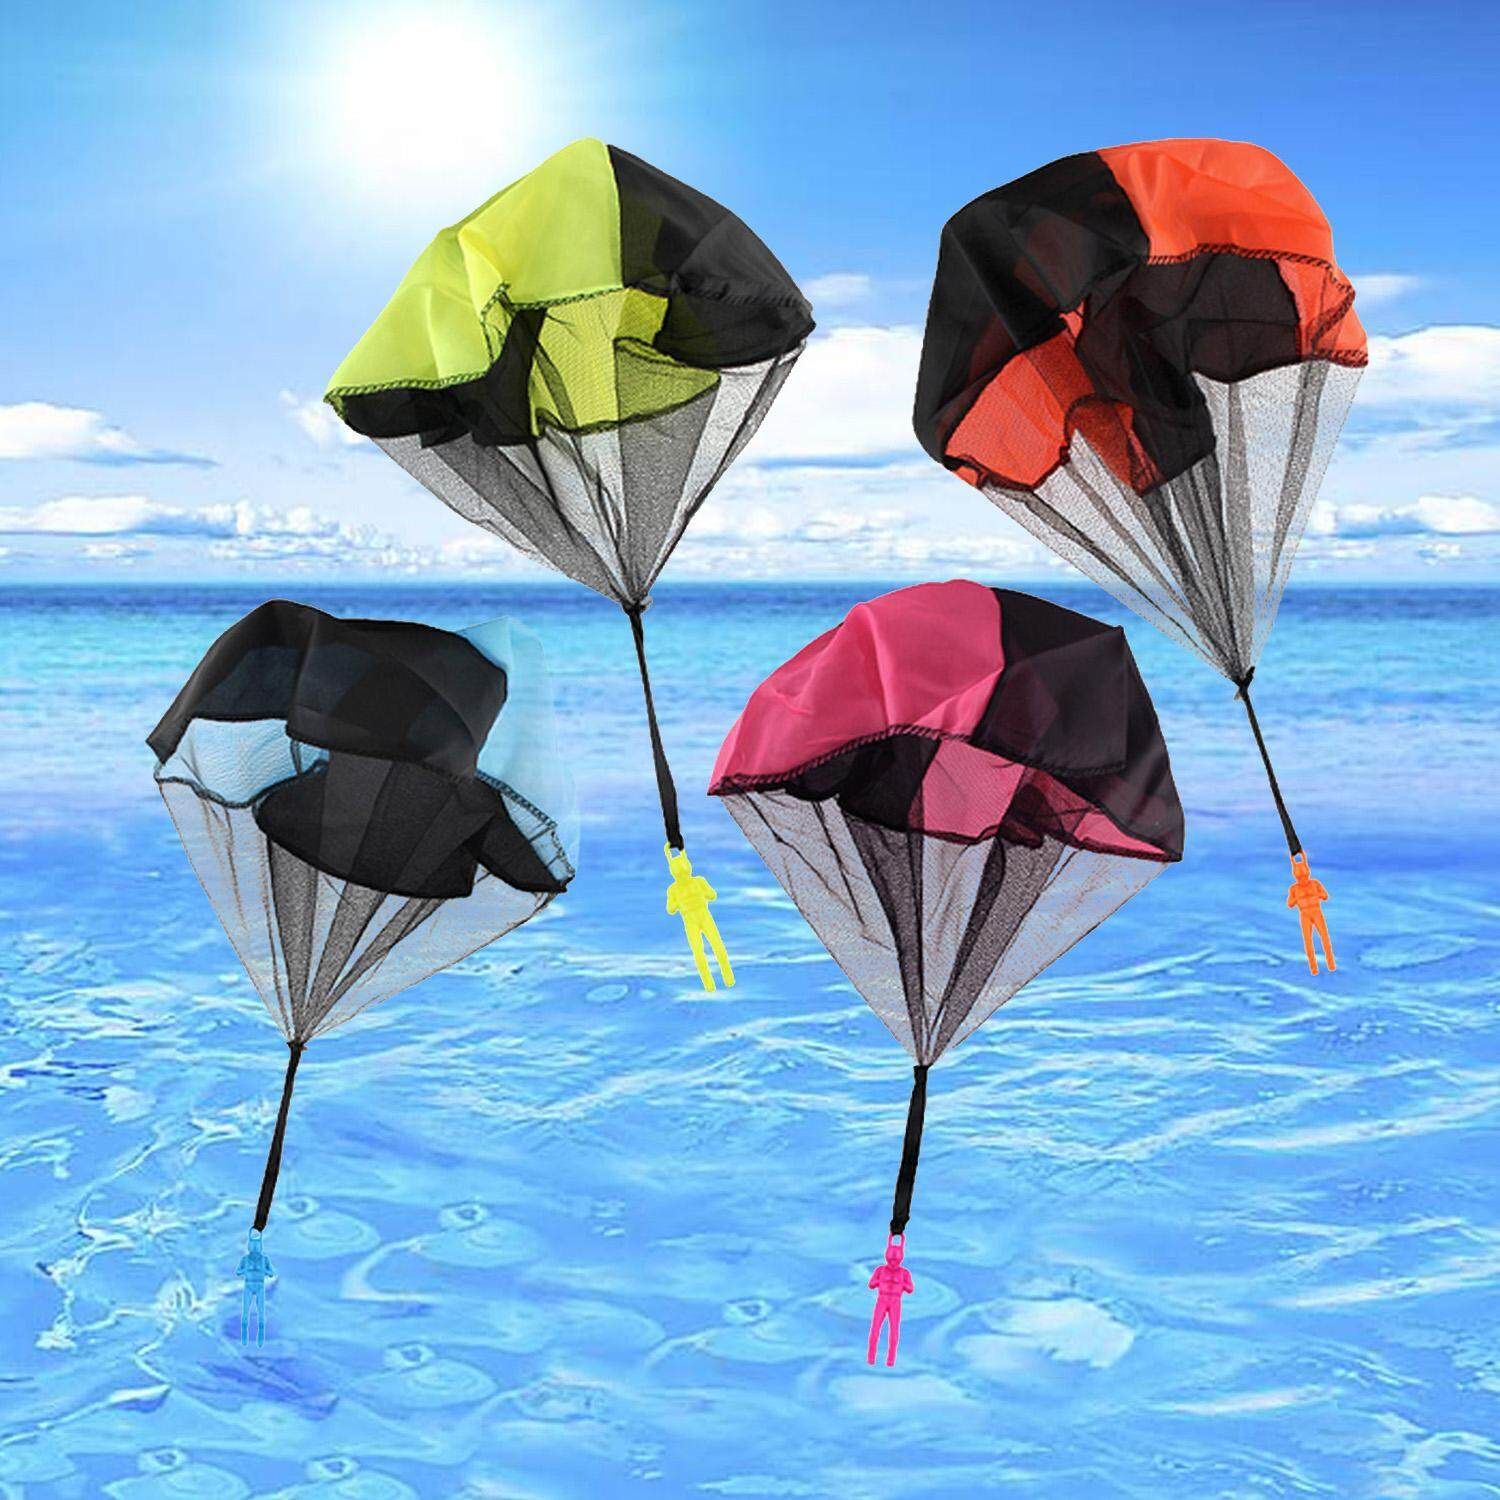 Hình ảnh 4 PCS Tangle Free Hand Throwing Parachute Figures Toy Children Outdoor Flying Toys No Strings Random Colors - intl